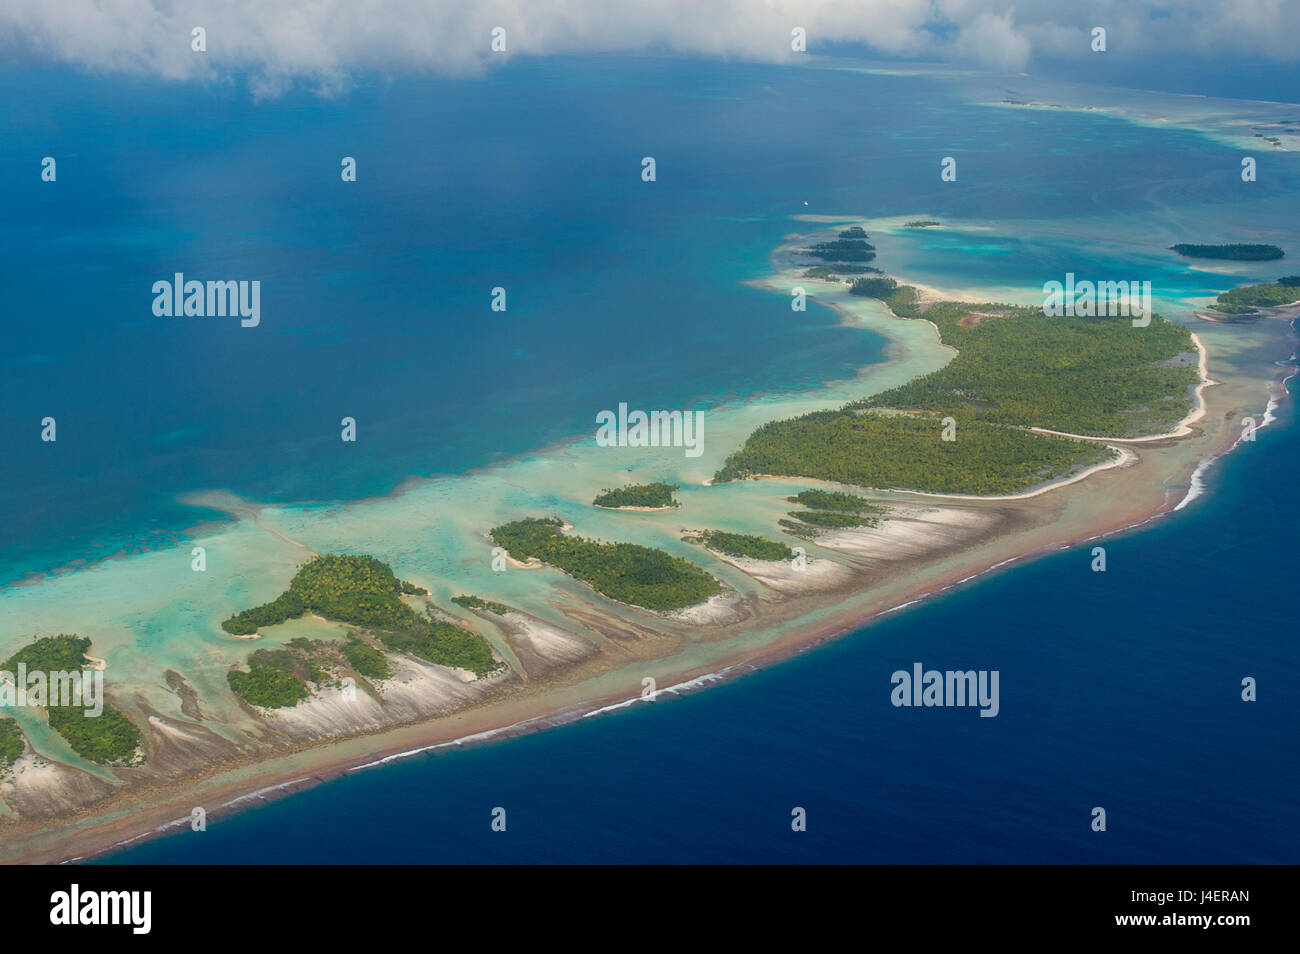 Aerial of the blue lagoon in Rangiroa, Tuamotus, French Polynesia, Pacific - Stock Image